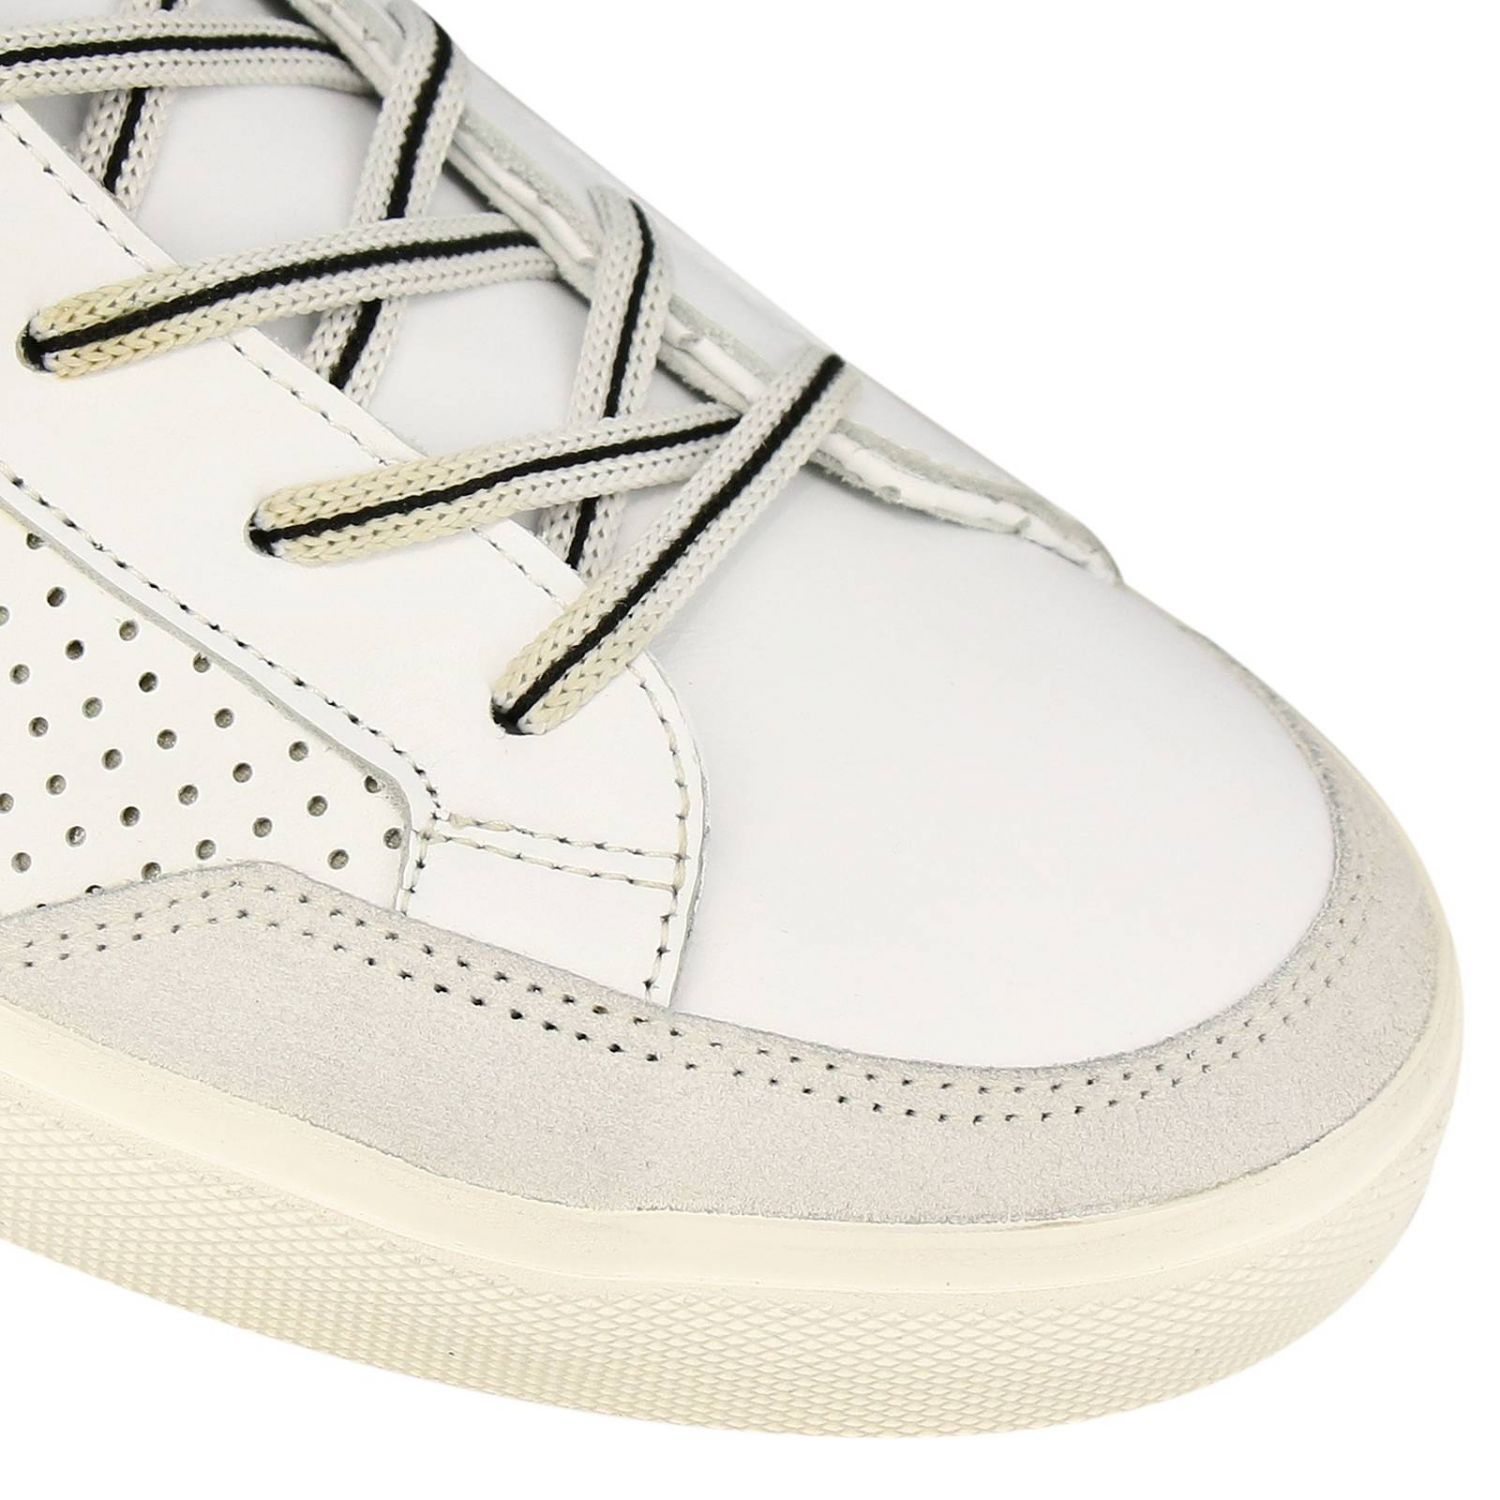 Shoes men Leather Crown white 3